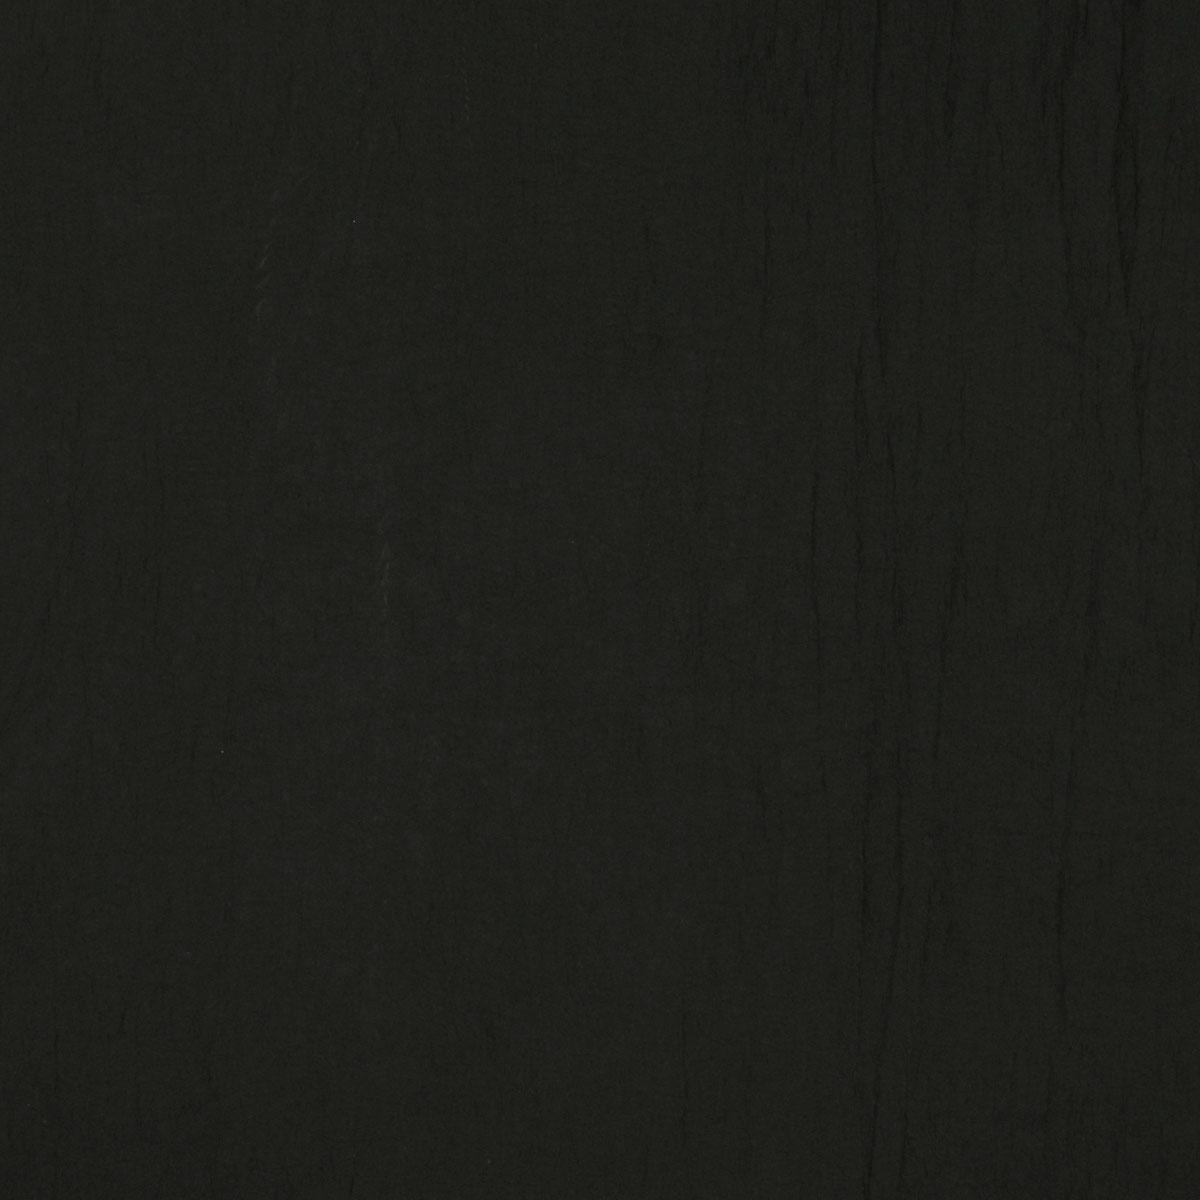 Black Curtain Fabric Shop For Cheap Curtains Amp Blinds